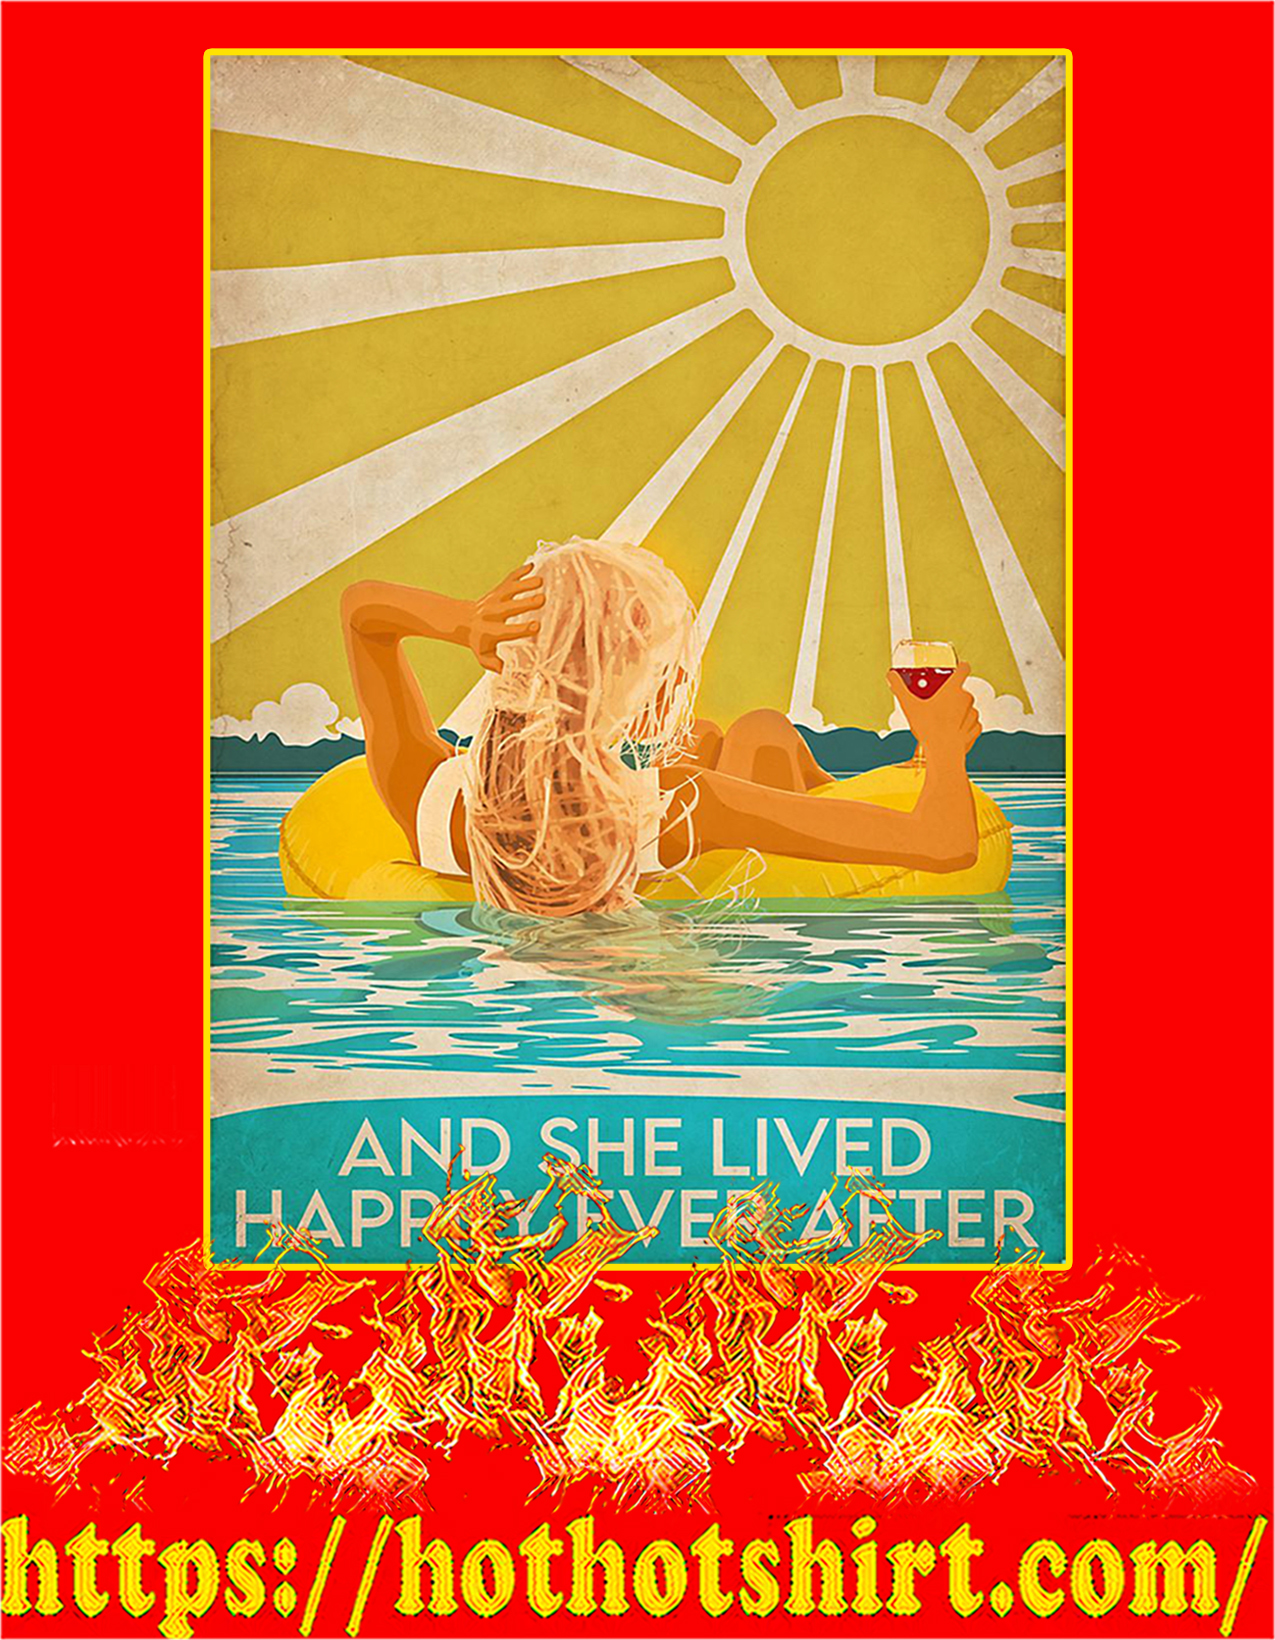 Swimming blonde and she lived happily after poster - A2